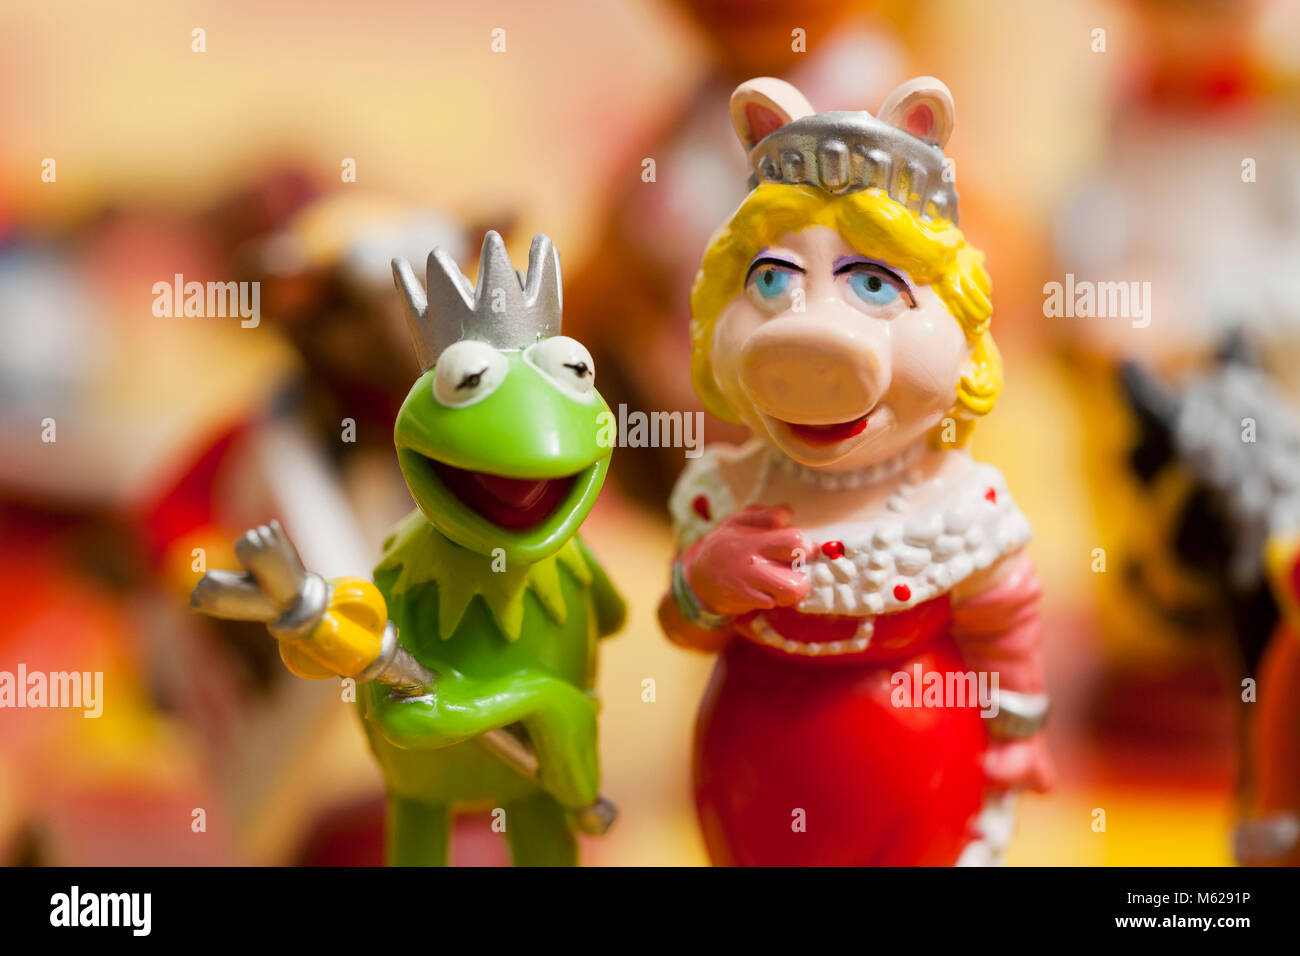 Action figures of Kermit the Frog and Miss Piggy - USA - Stock Image